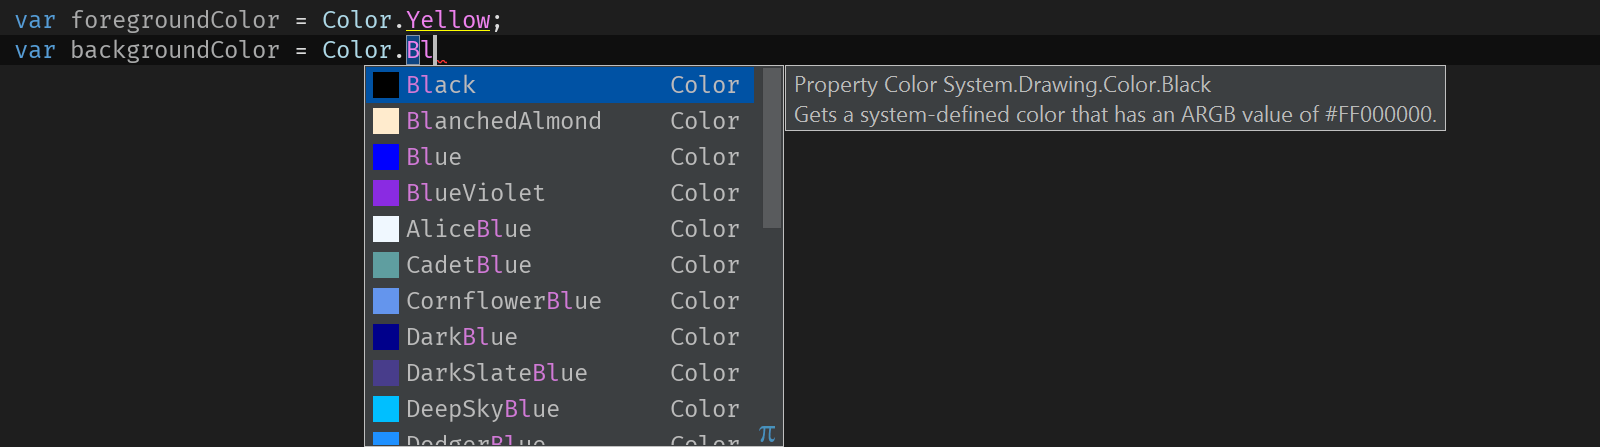 Code completion for colors